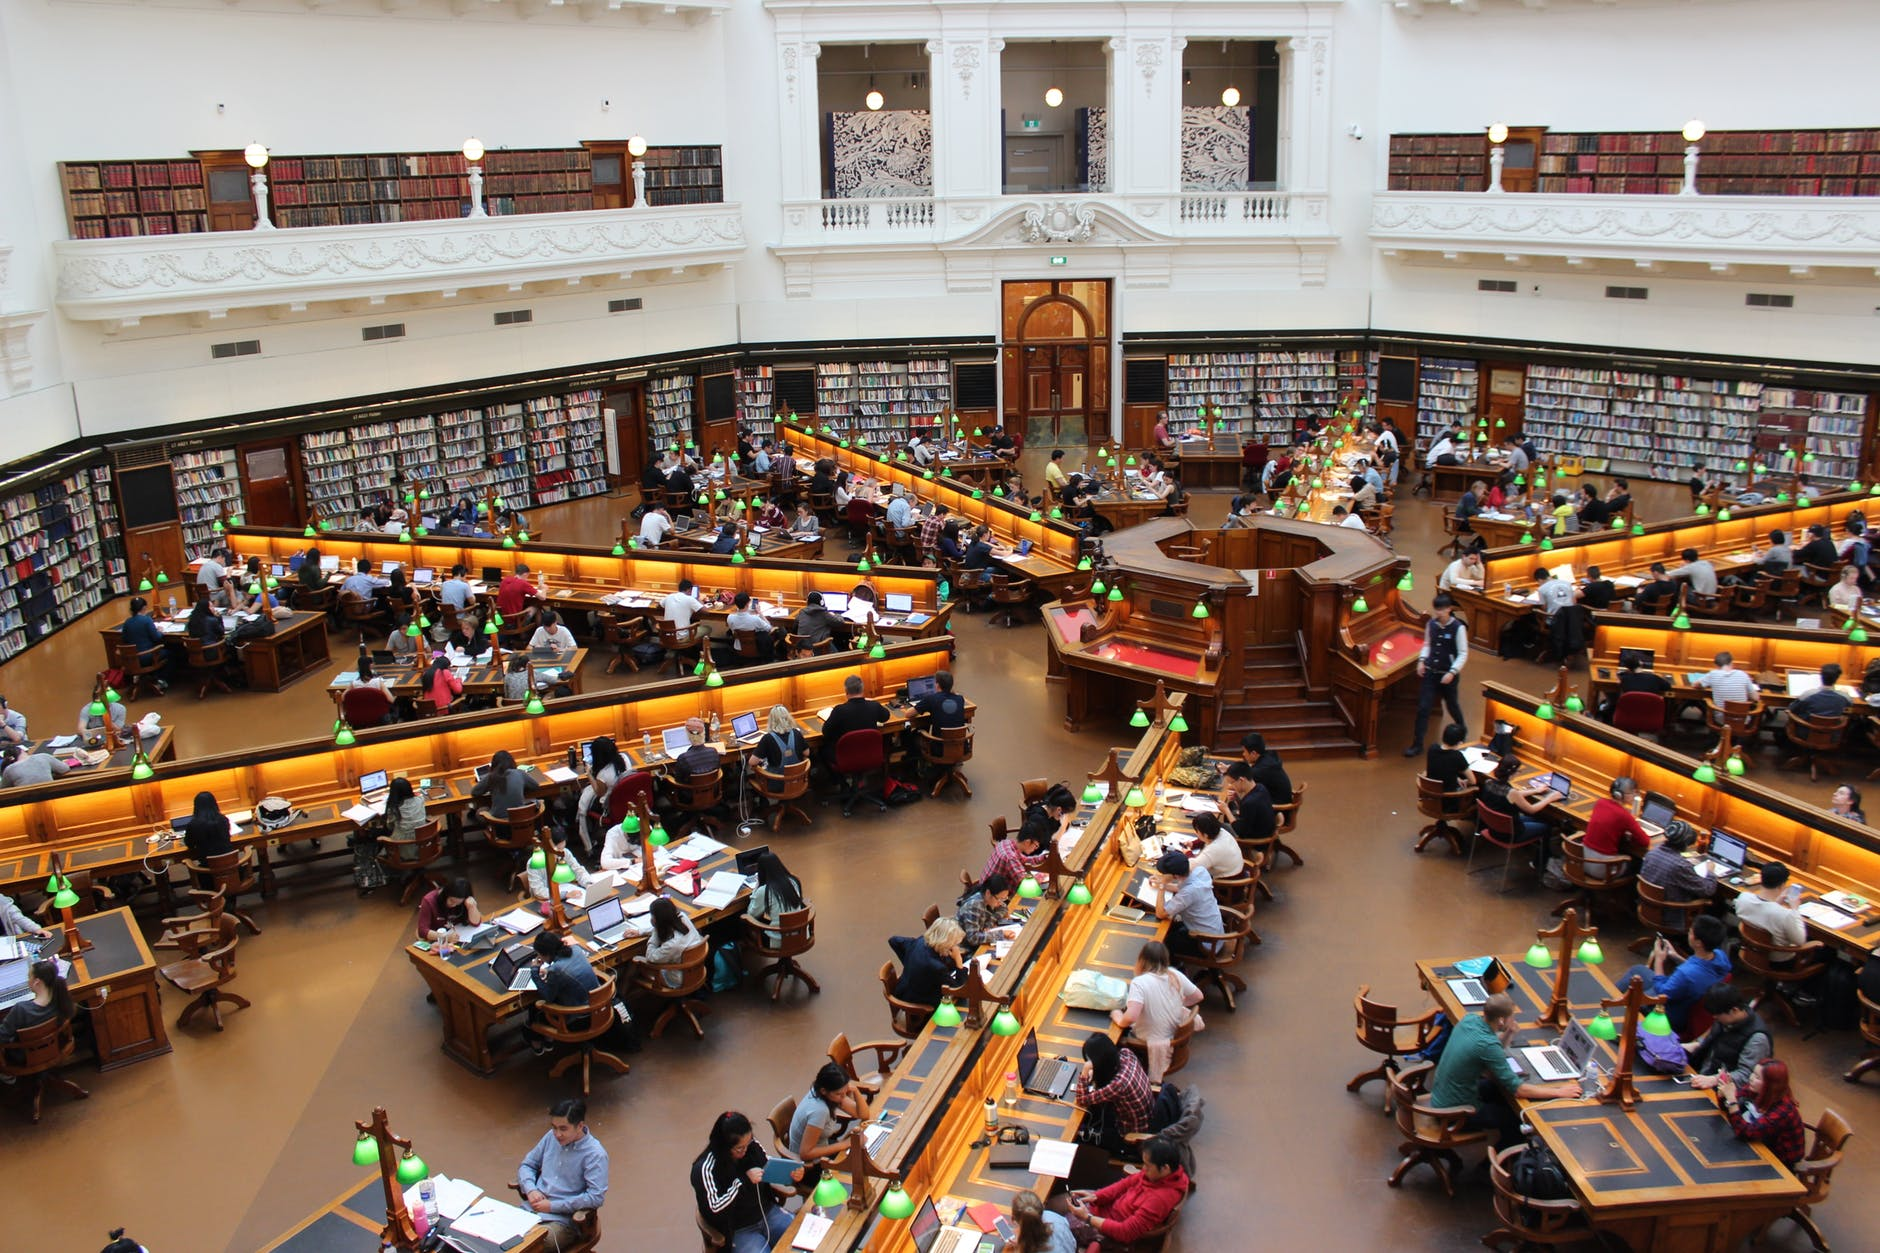 Furniture Trends In Libraries